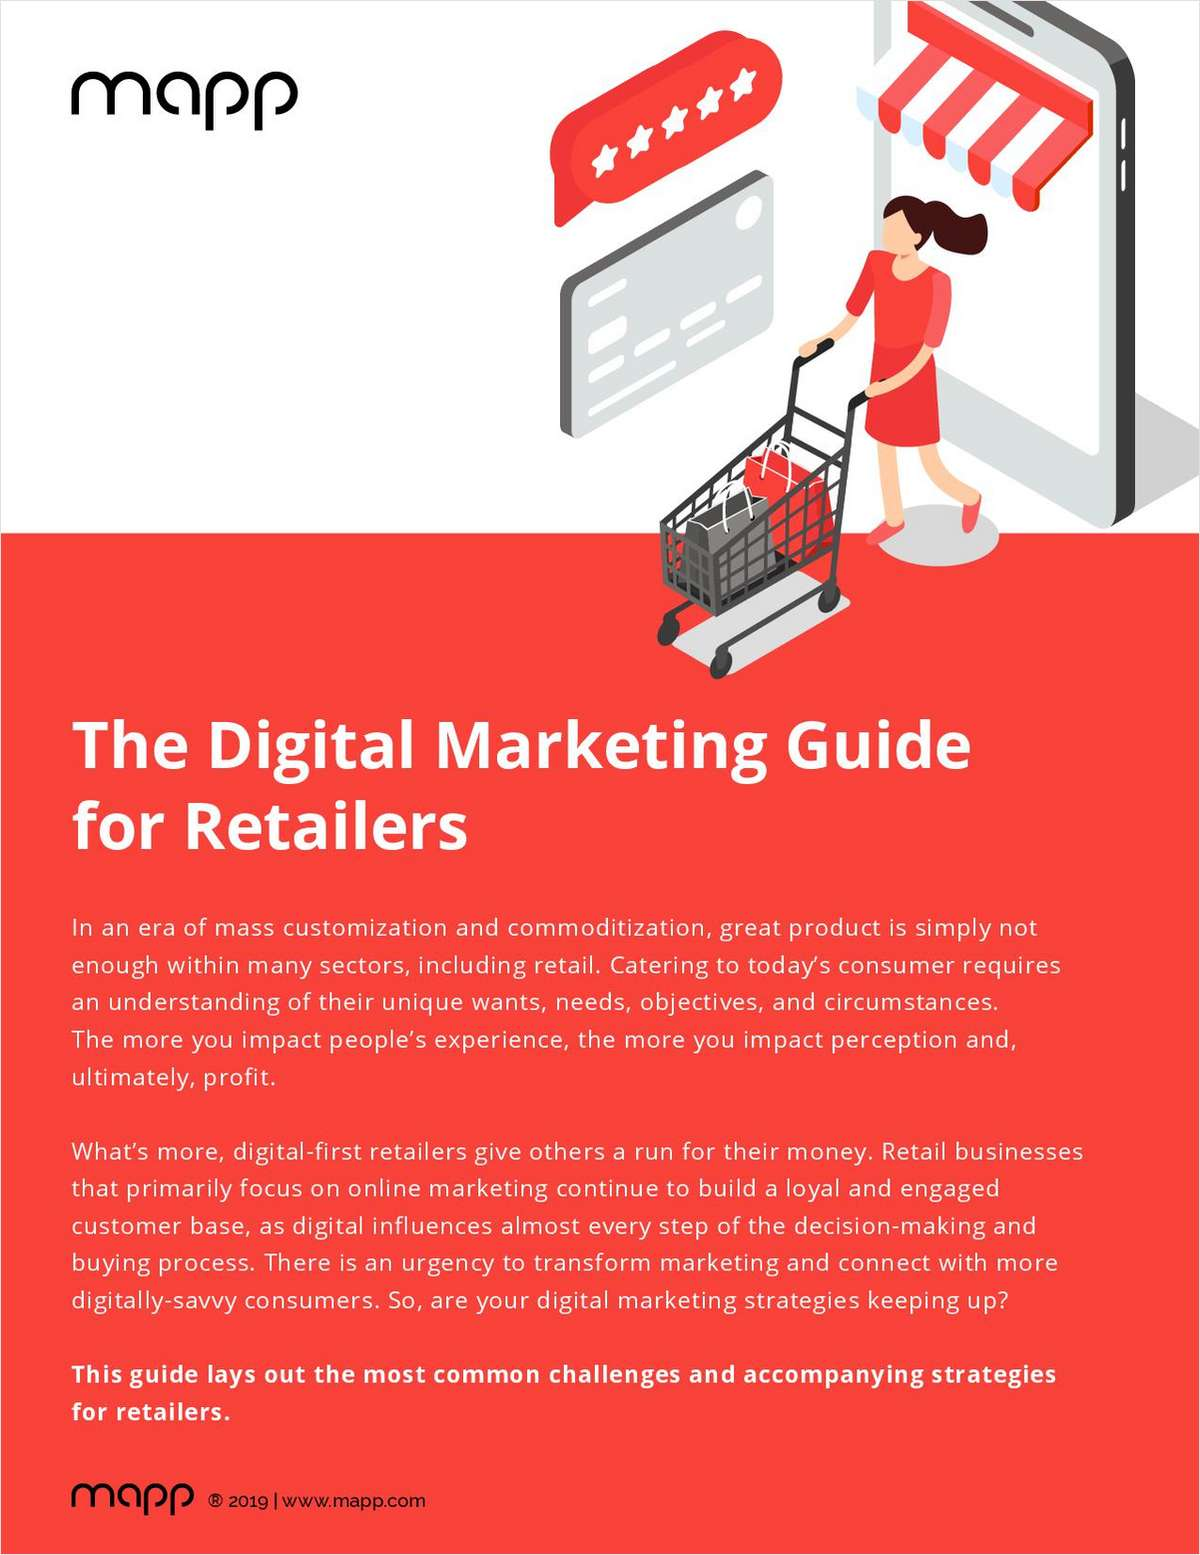 The Digital Marketing Guide for Retailers